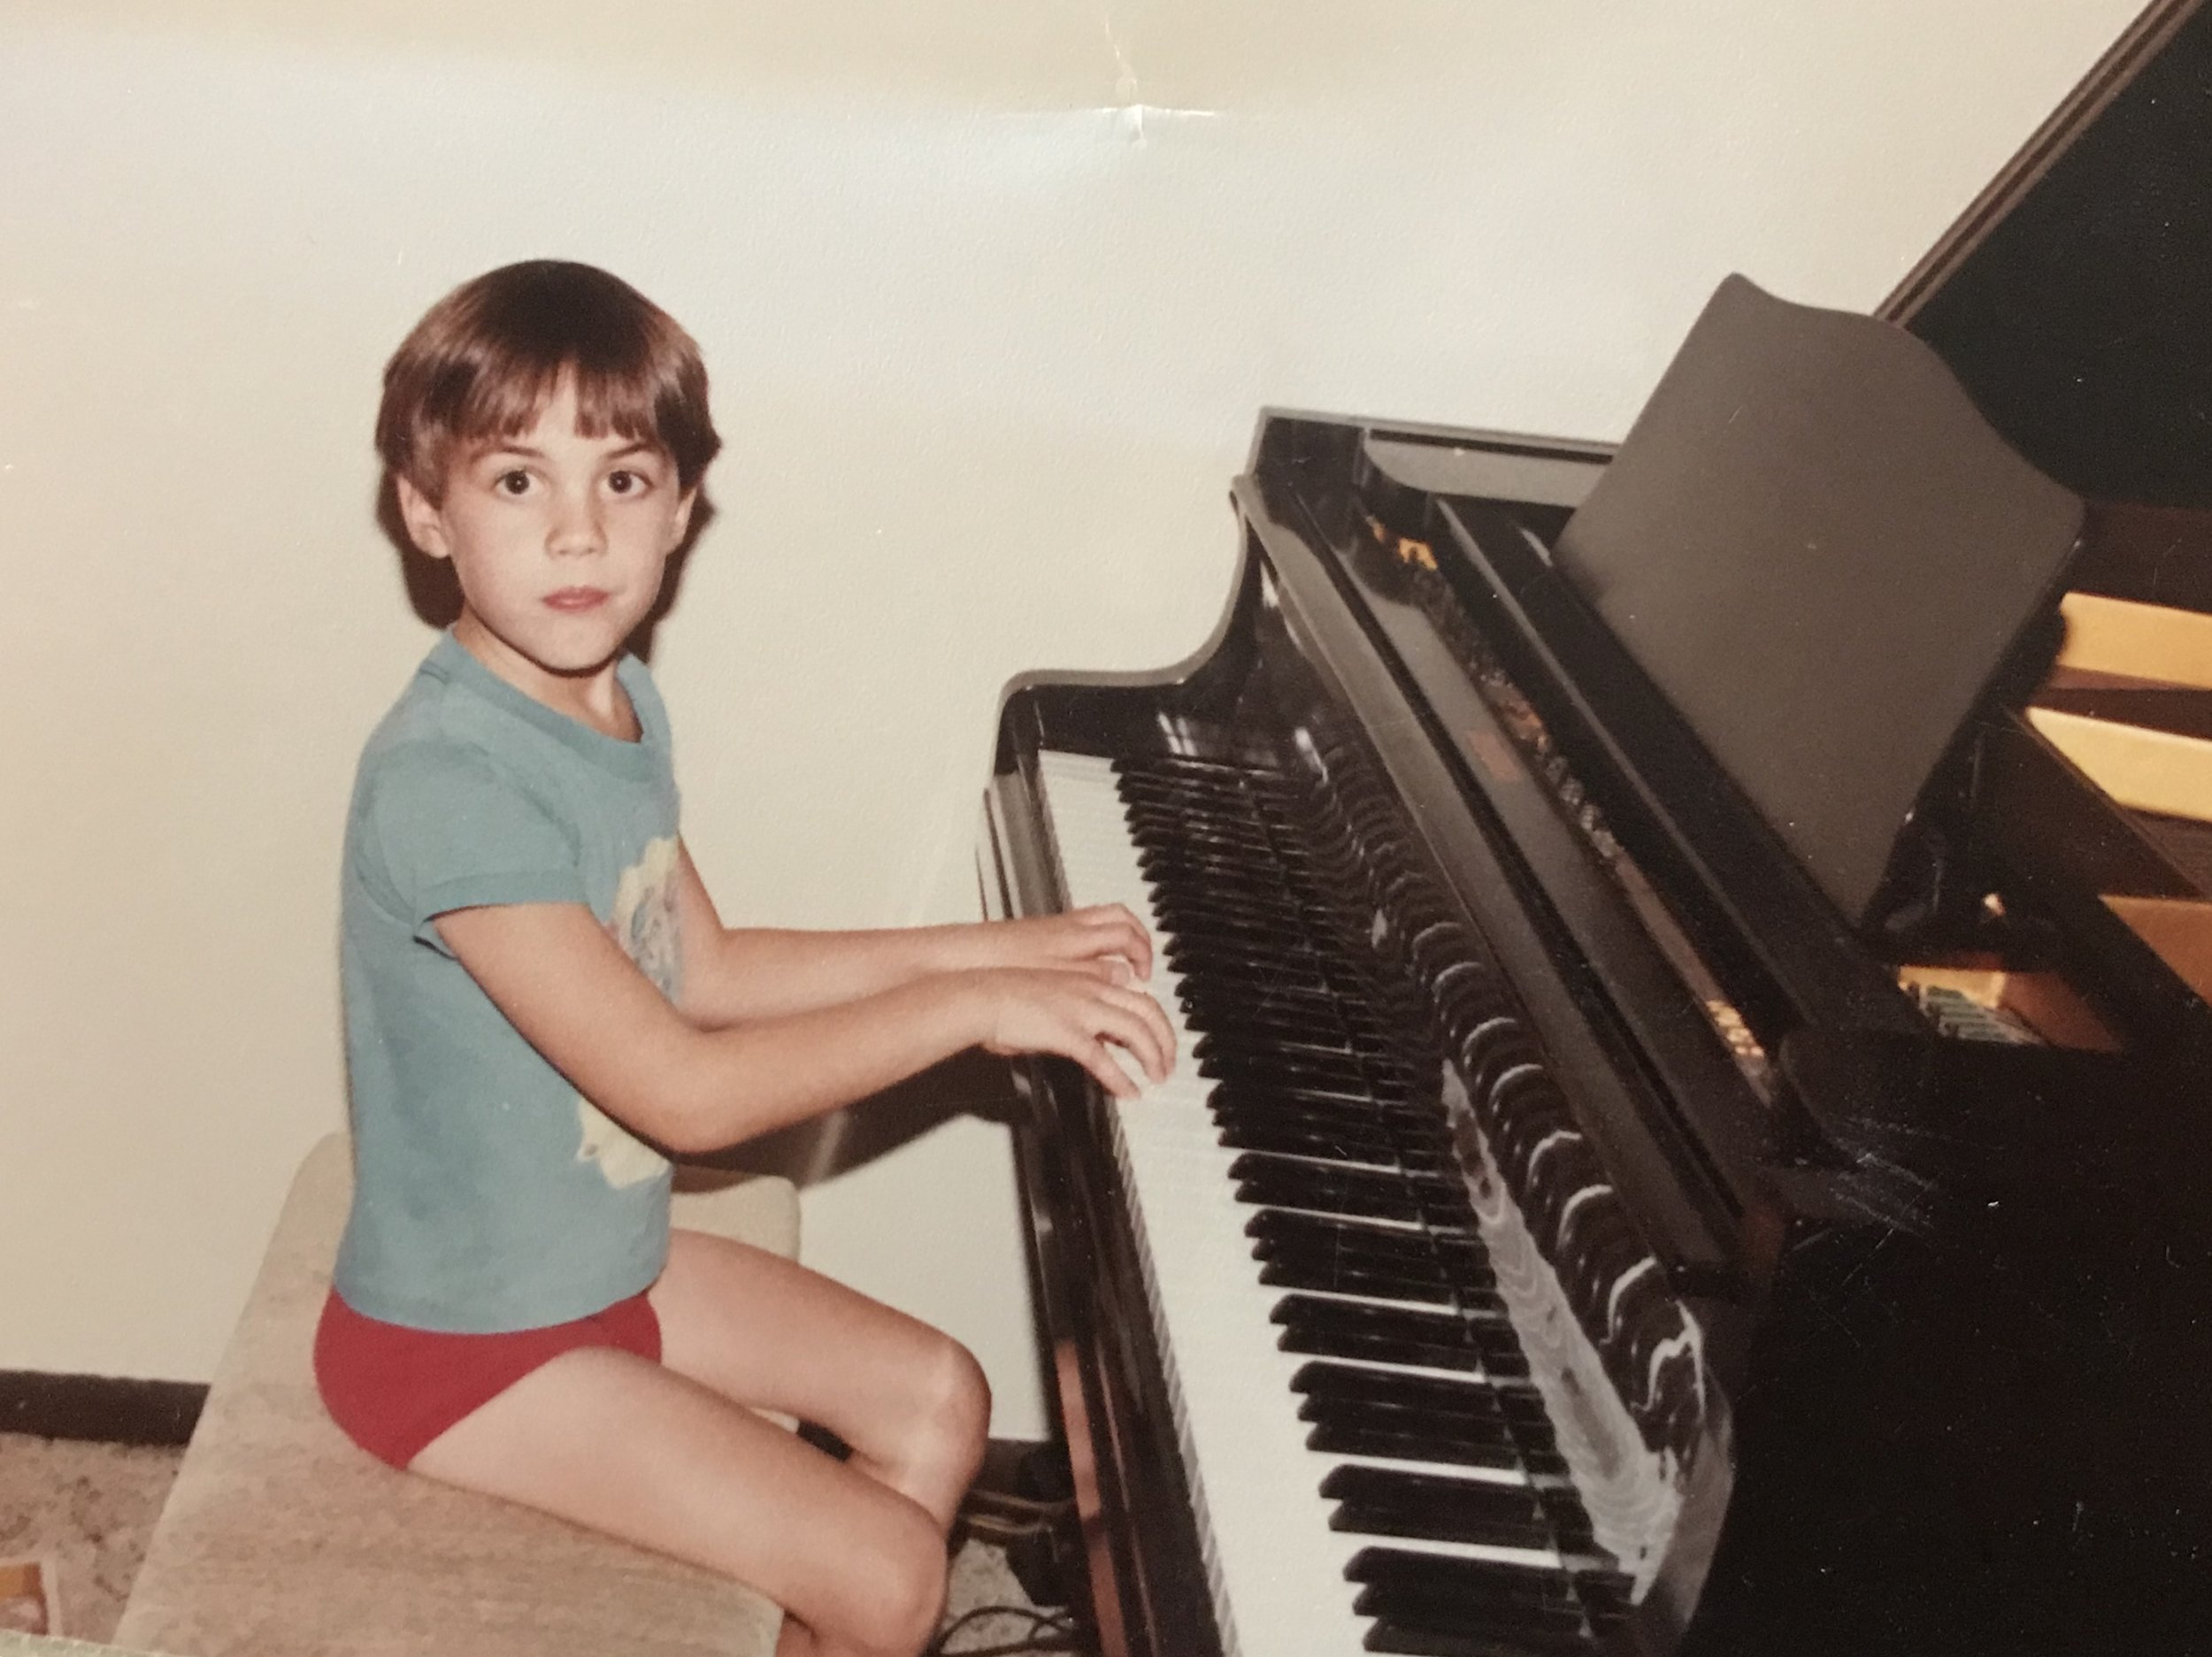 Russ knew what audiences wanted from an early age…